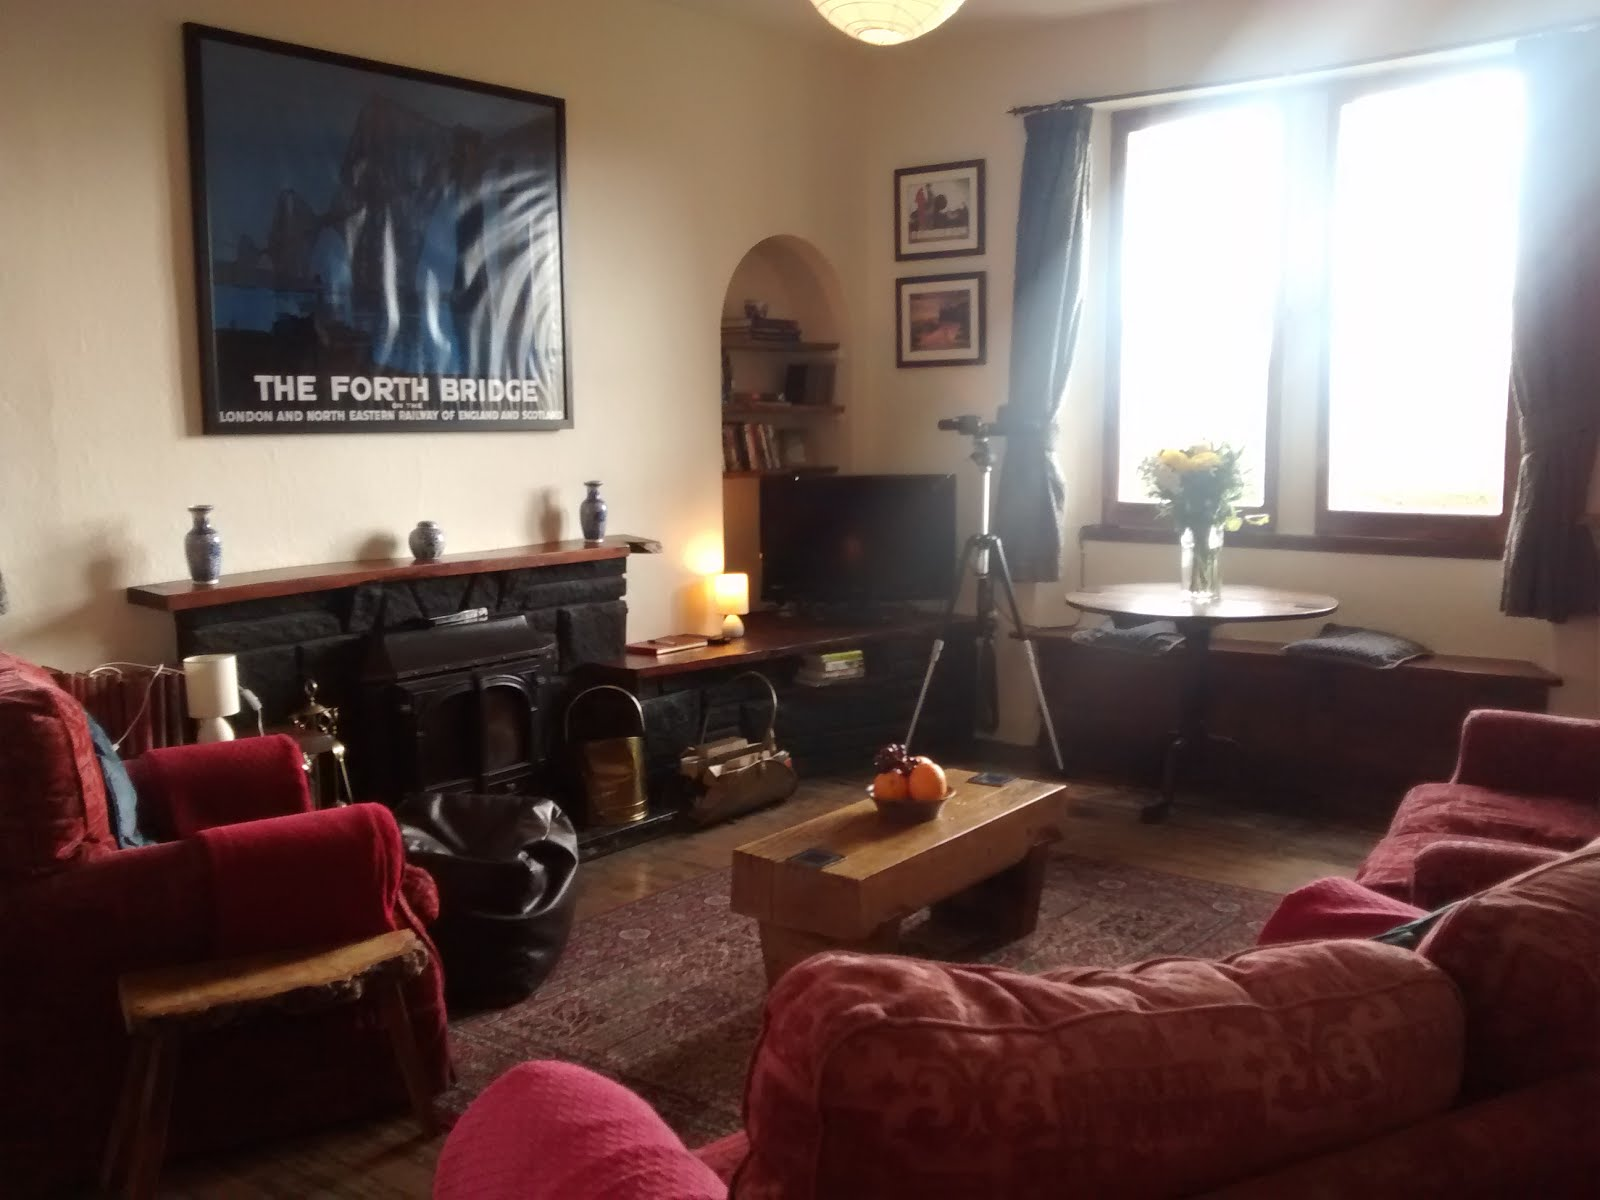 Holiday cottage near Edinburgh. Living room